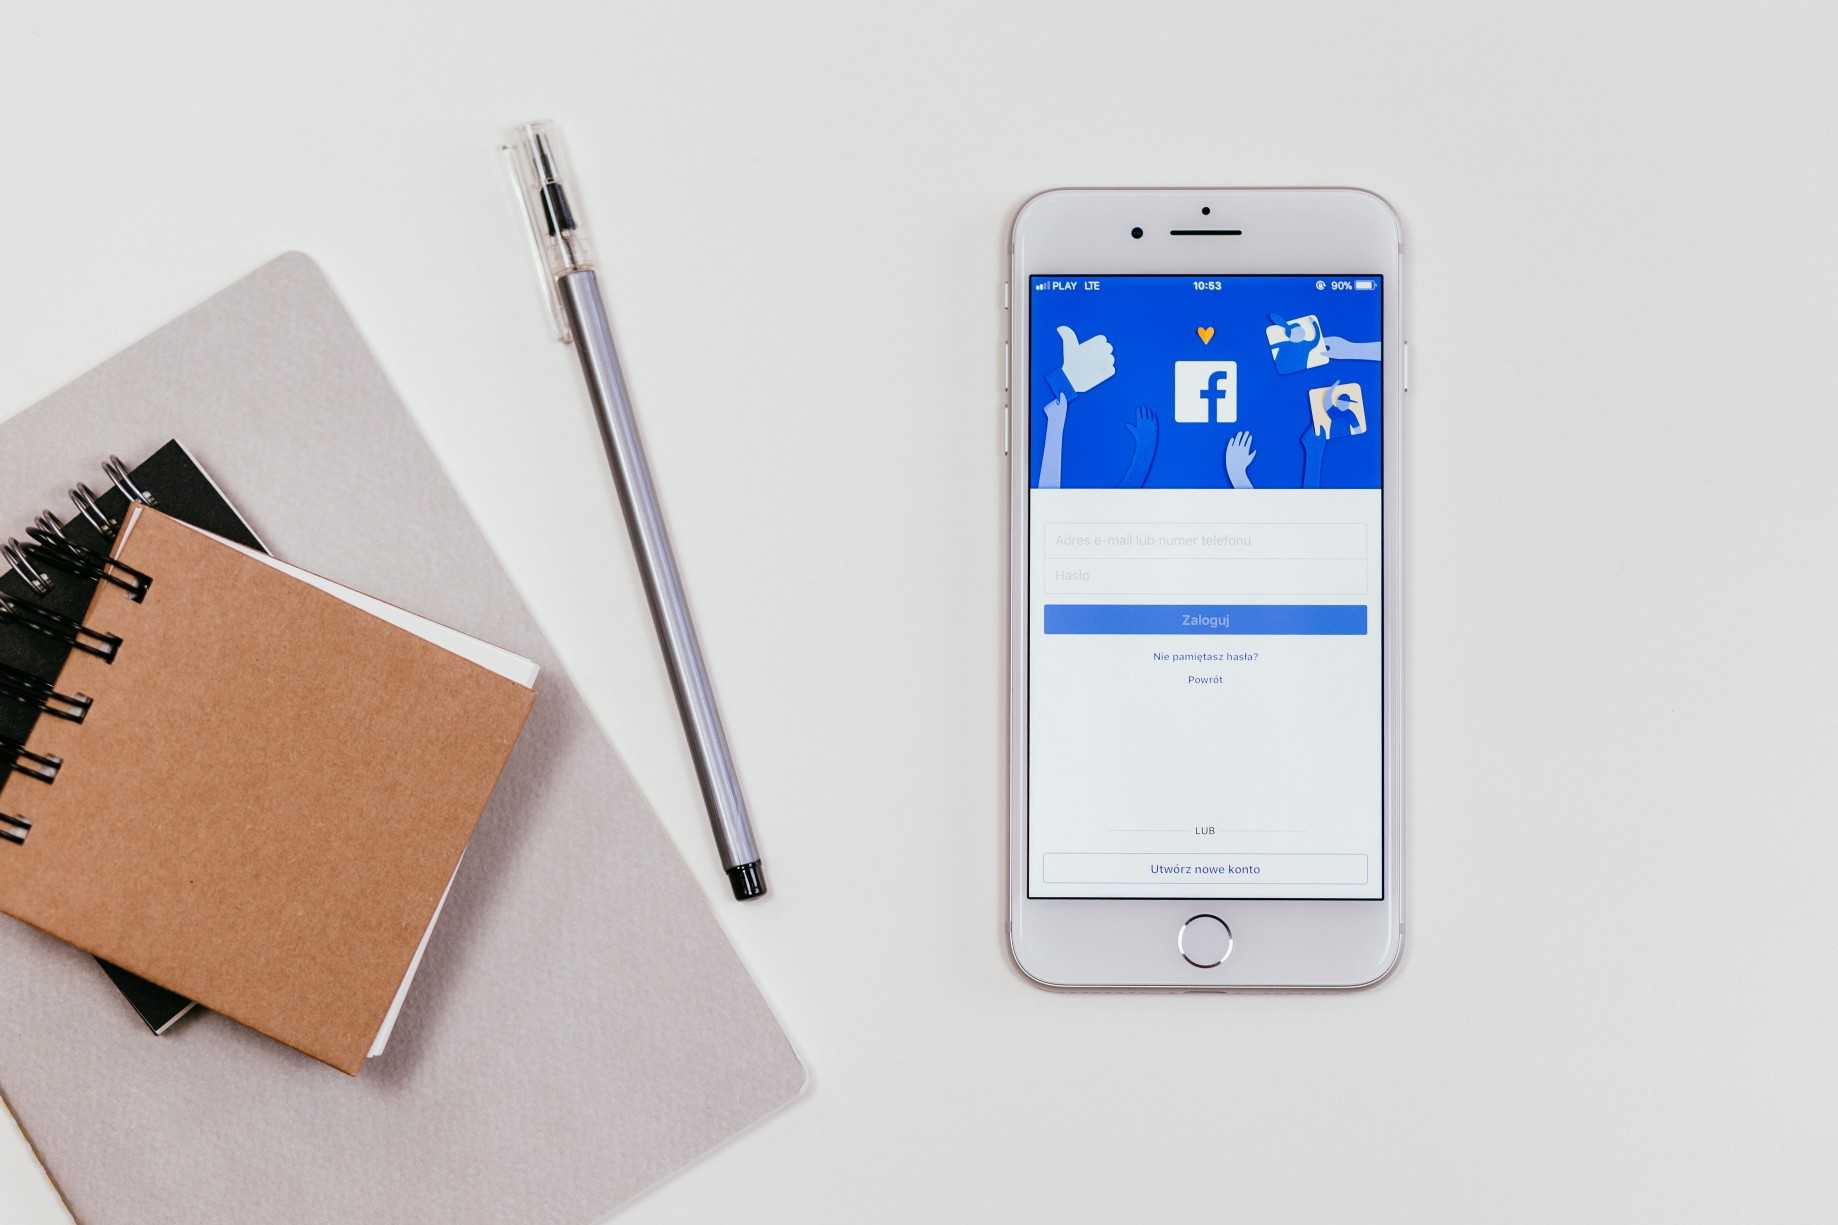 Get Unlimited Likes on Facebook Posts with Online Apps